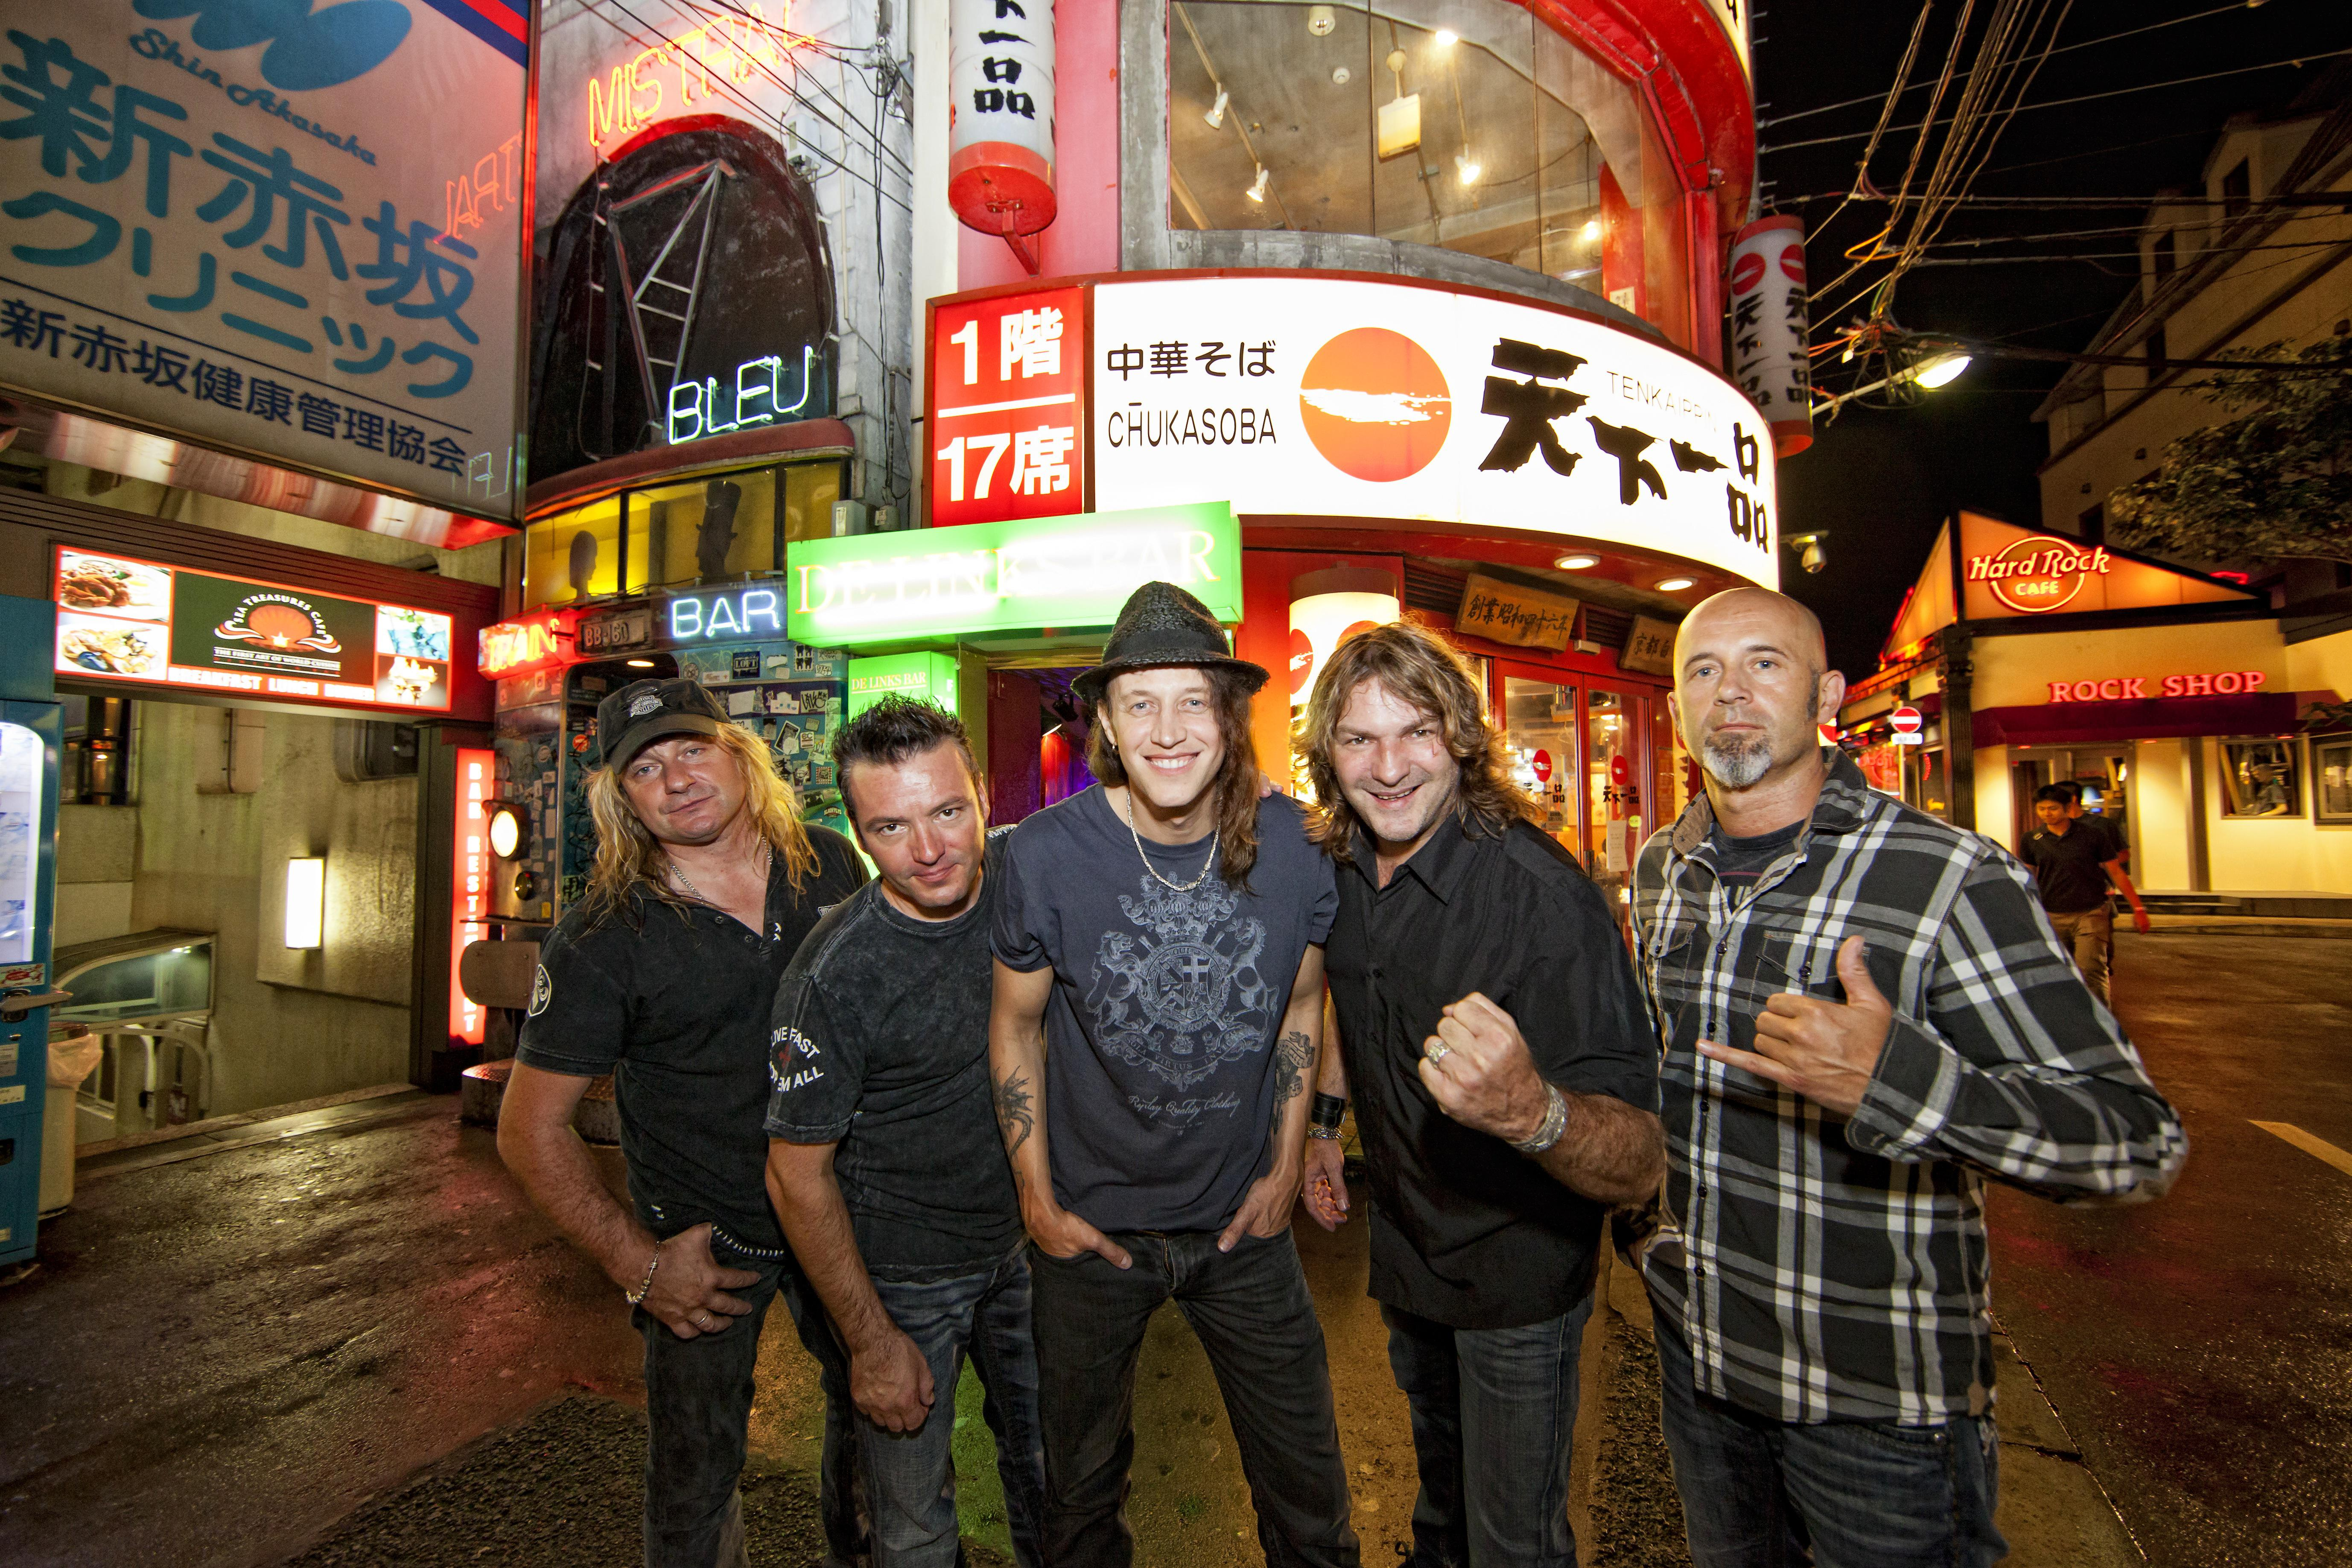 WITH GOTTHARD IN JAPAN